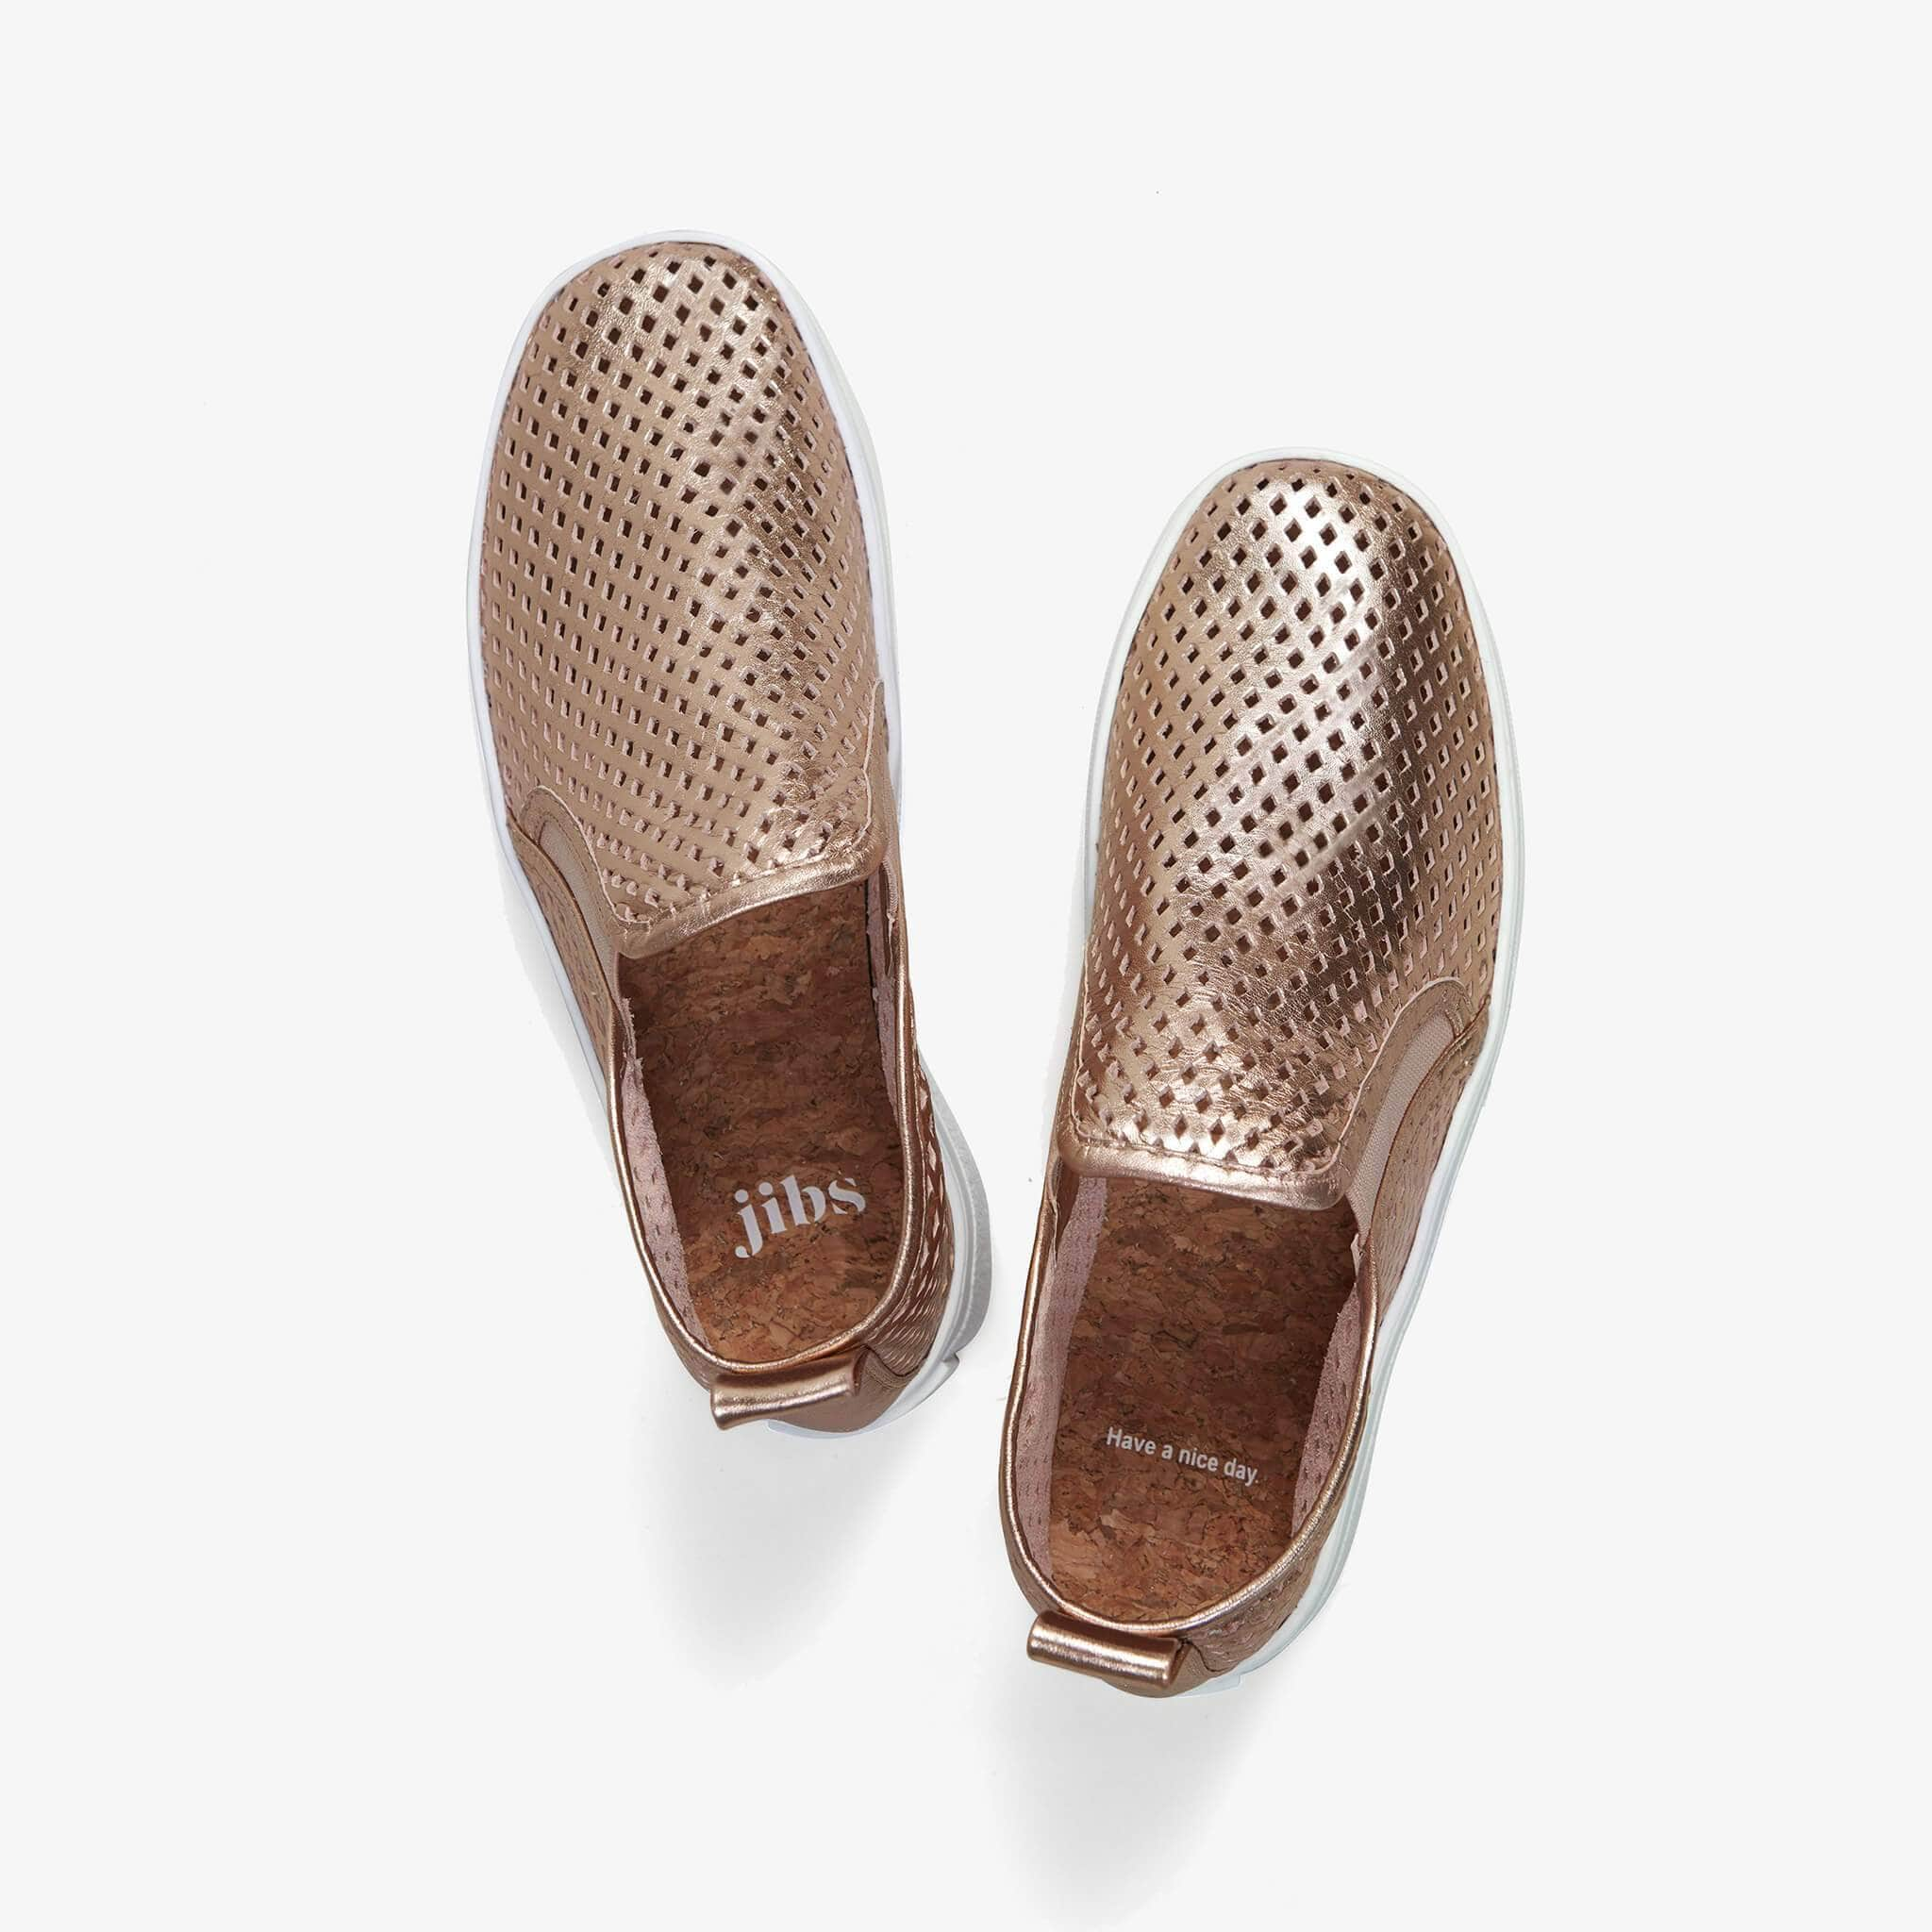 Jibs Mid Rise Rose Gold Slip On Sneaker Bootie Top Have A Nice Day